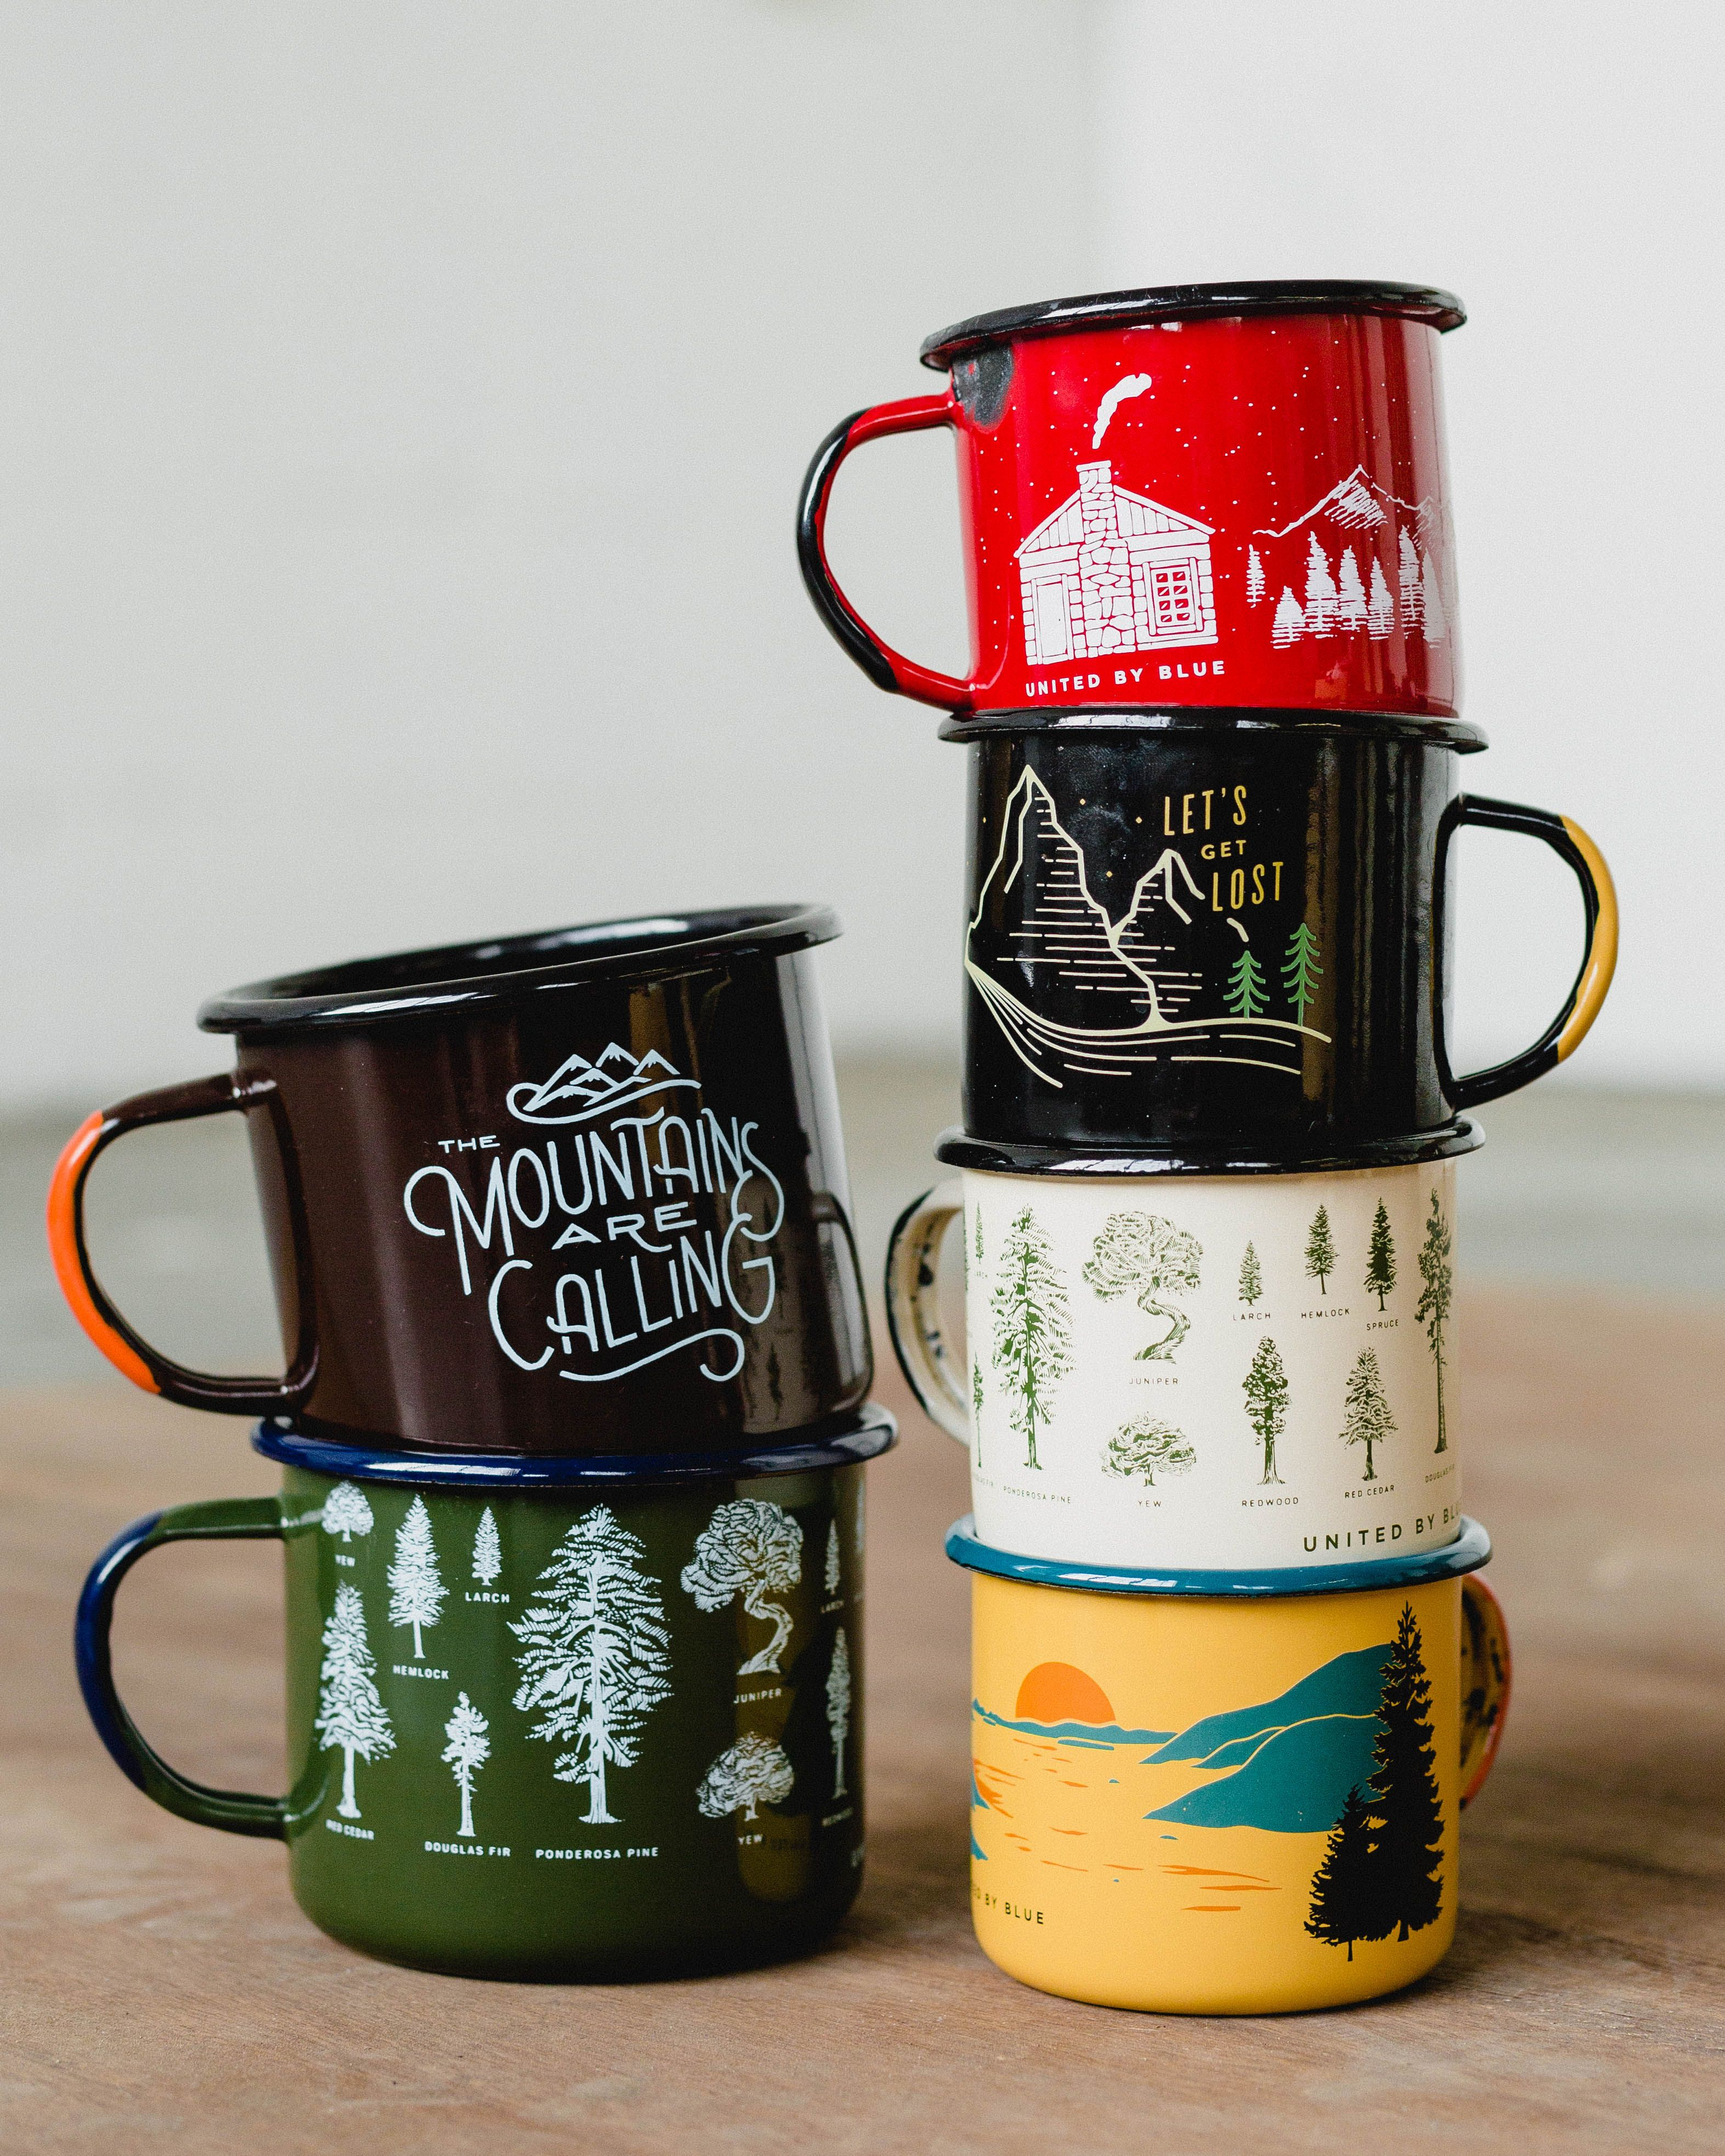 Meet the newest additions to the United By Blue enamelware